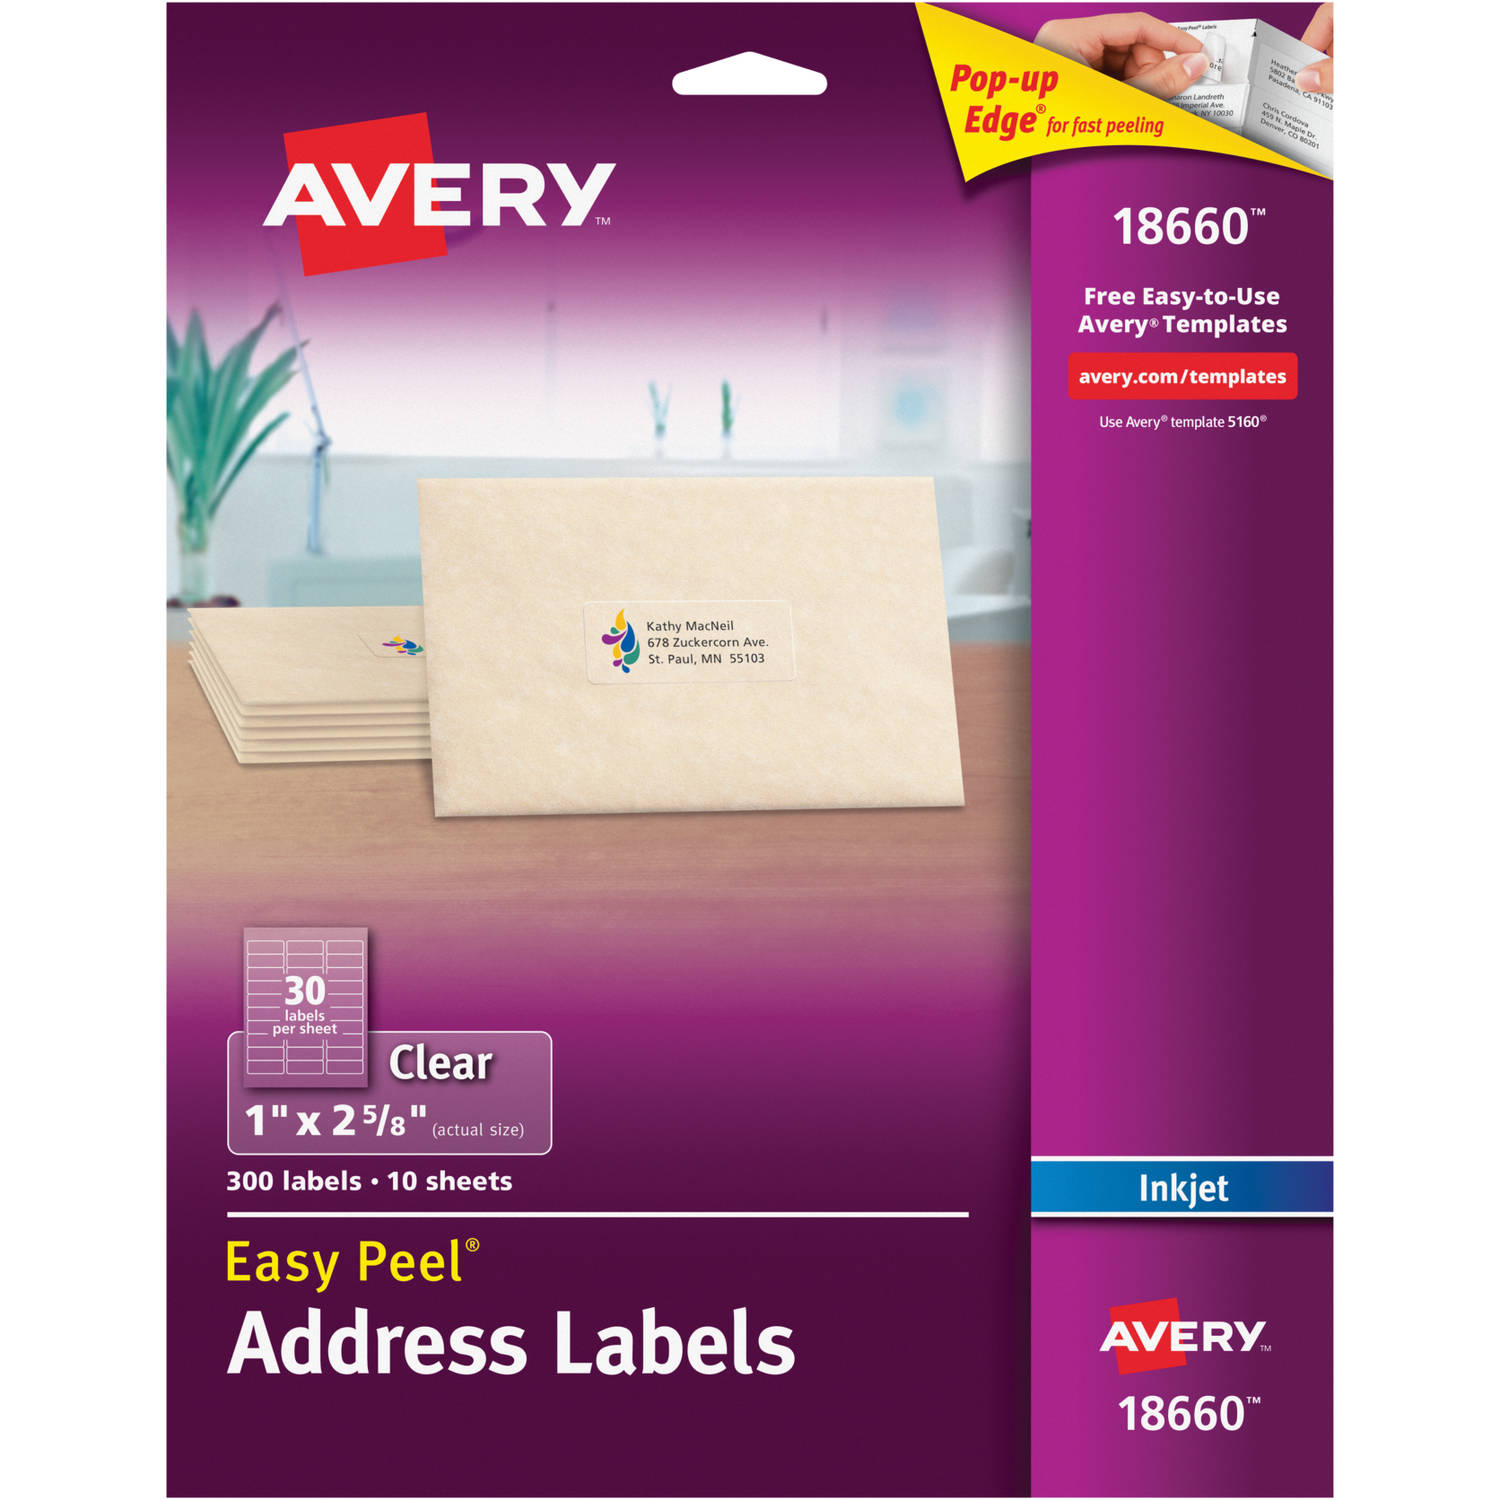 Avery easy peel address labels for inkjet printers clear 1 x 2